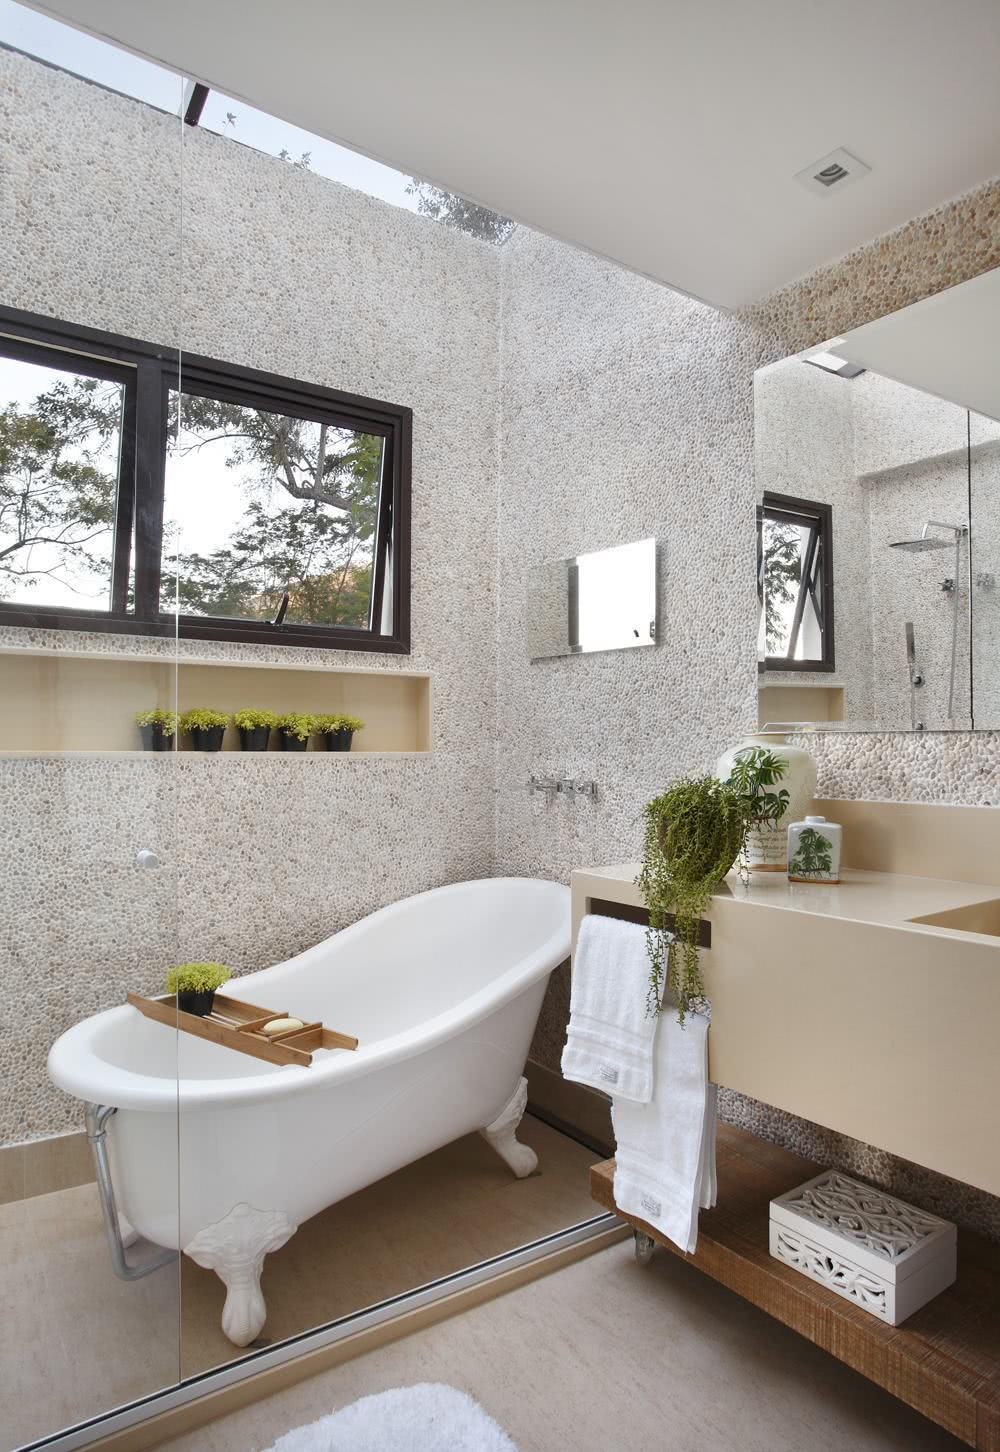 The lighting in the bathroom facilitates the visual field of the environment